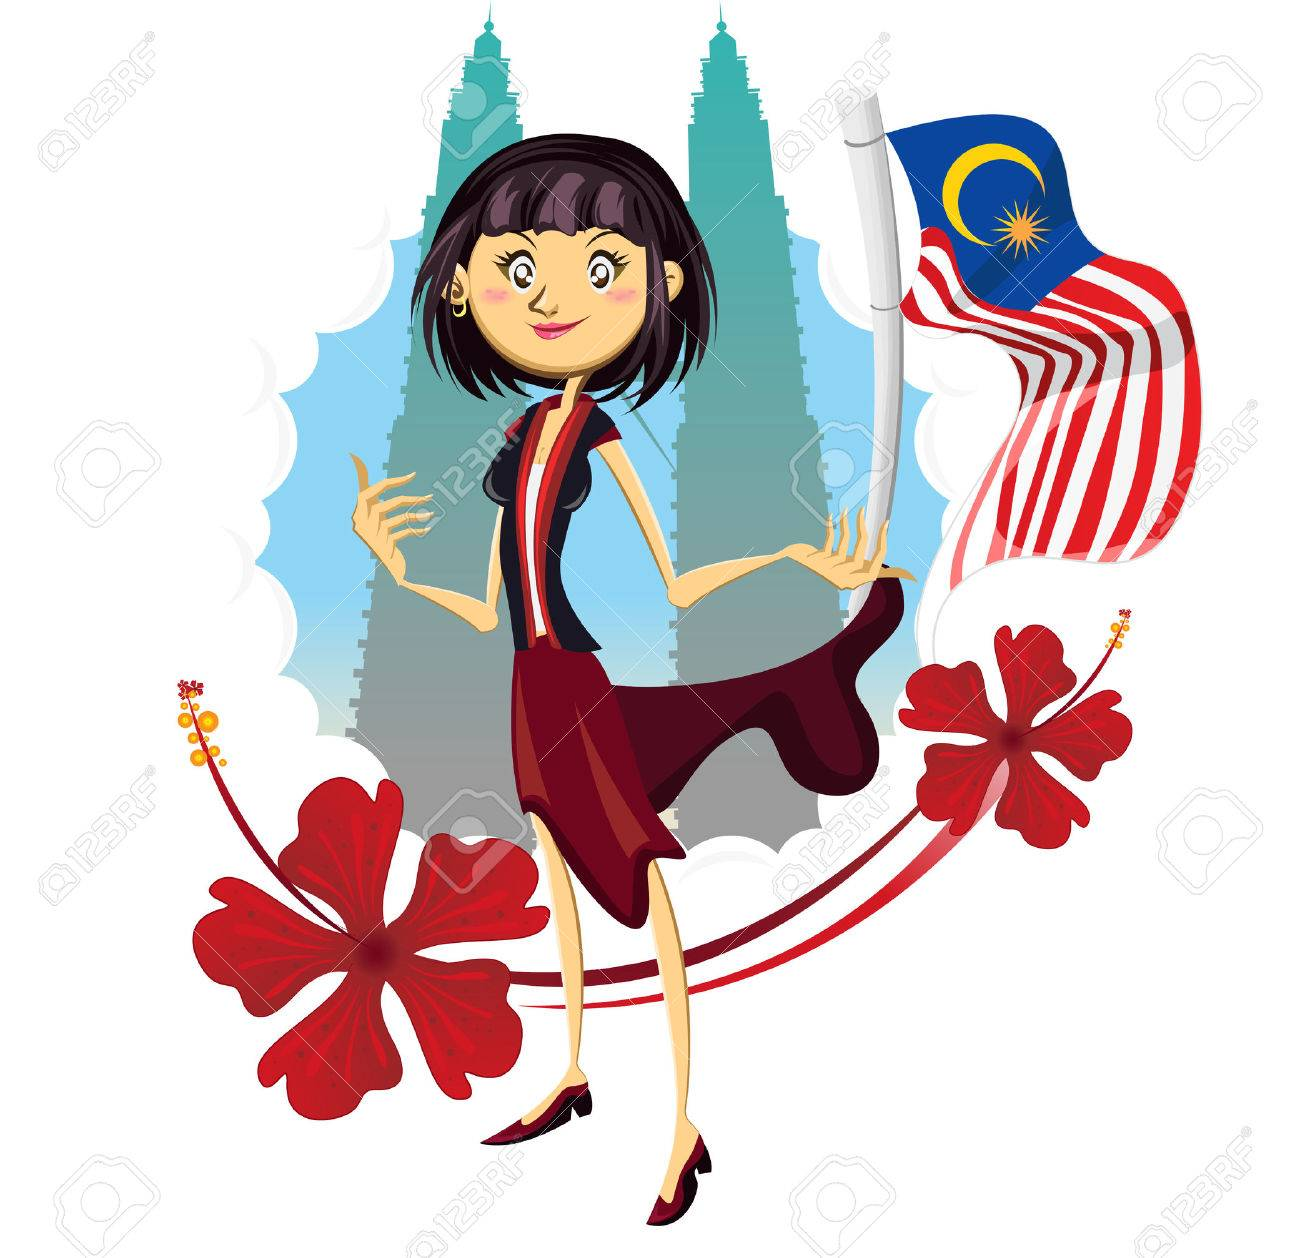 Tourism in malaysia truly asia illustration woman standing at tourism in malaysia truly asia illustration woman standing at petronas tower represented tourism in malaysia truly buycottarizona Gallery